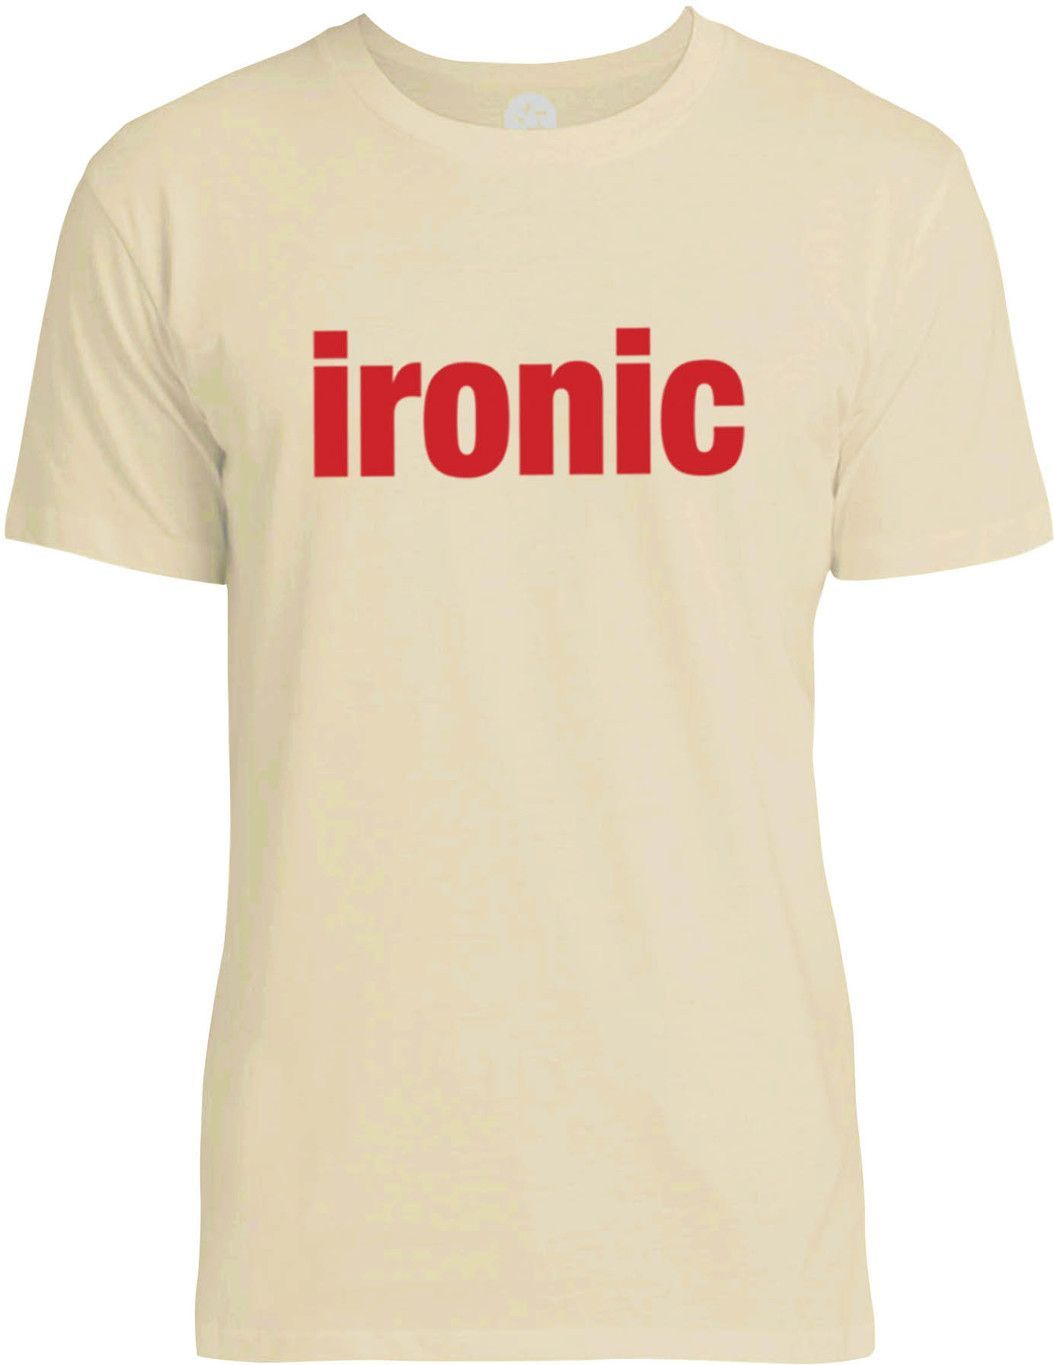 Ironic (Red) Mens Fine Jersey T-Shirt